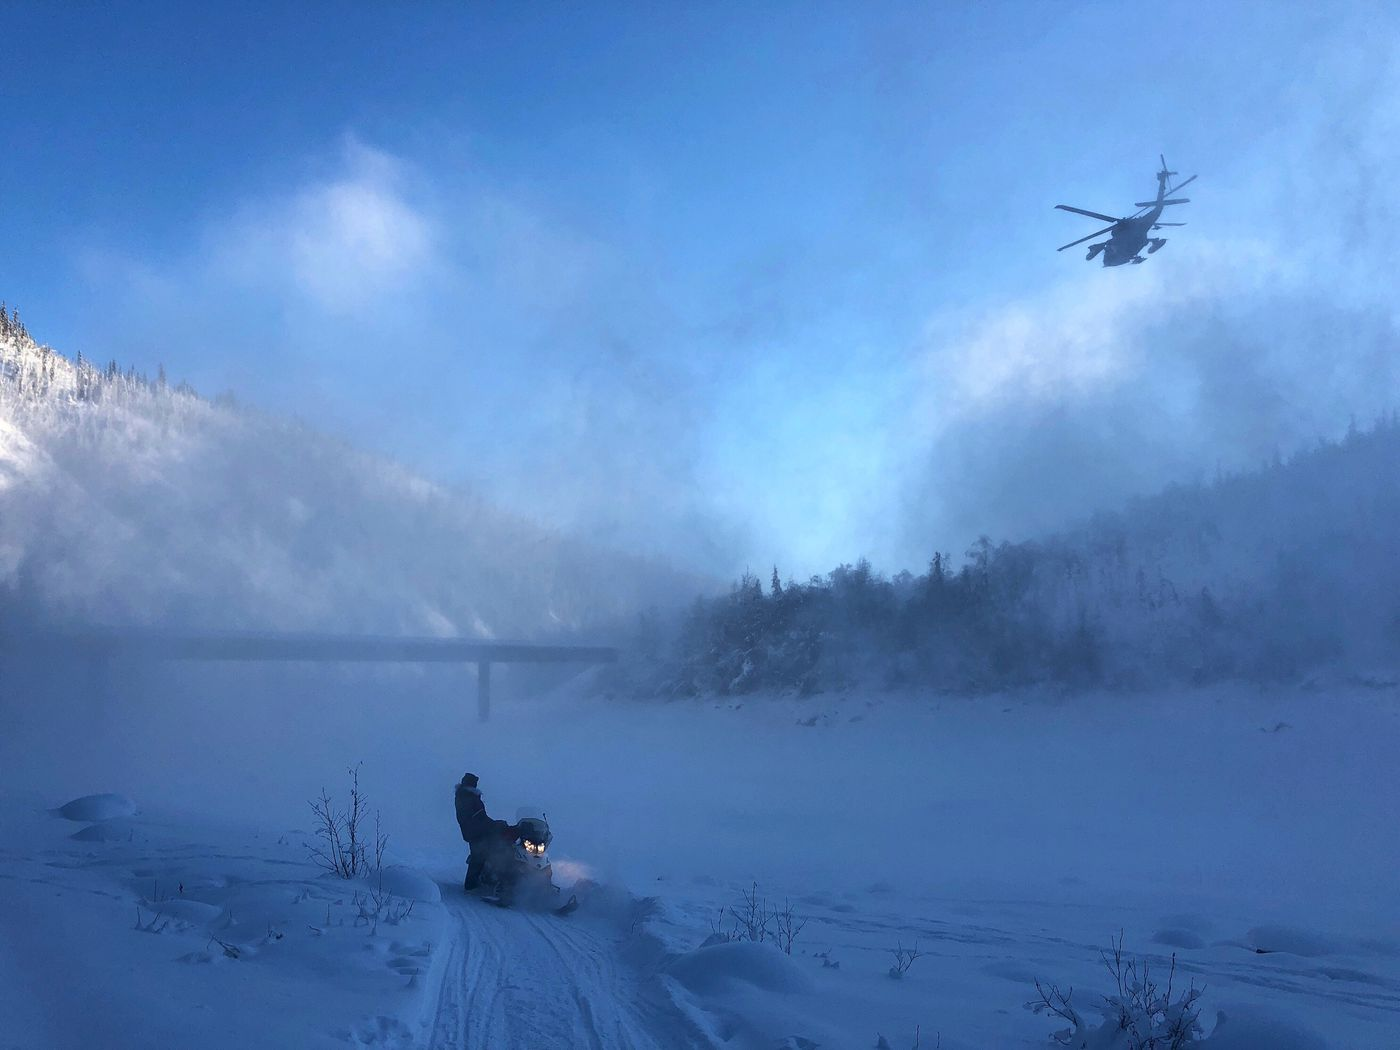 A helicopter from the Army's 52nd Aviation Regiment, based at Fort Wainwright, lifts off from the Fortymile River with Jason Campeau aboard on February 8, 2018. (Craig Jones photo)